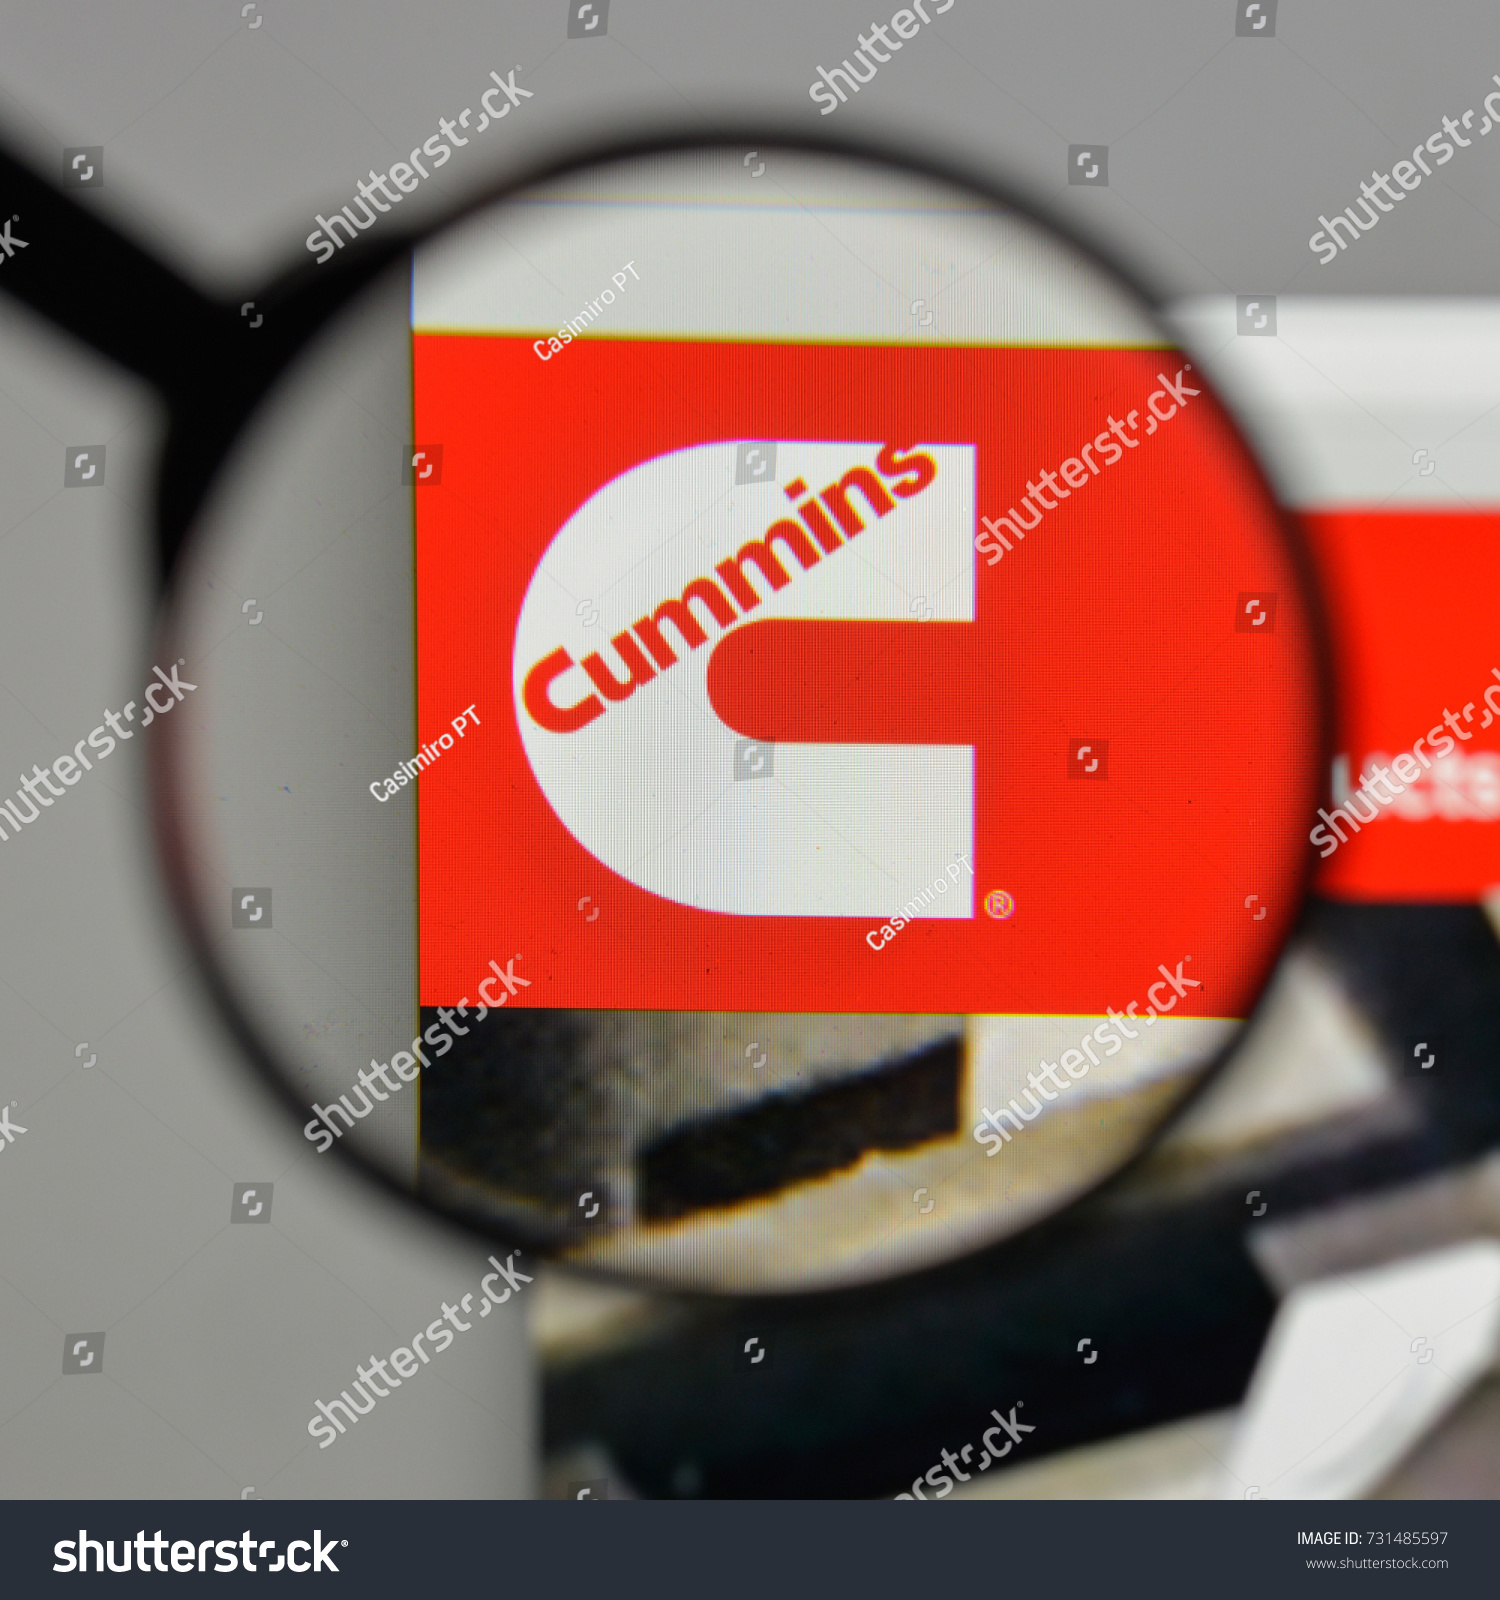 Milan italy august 10 2017 cummins stock photo 731485597 shutterstock milan italy august 10 2017 cummins logo on the website homepage biocorpaavc Images